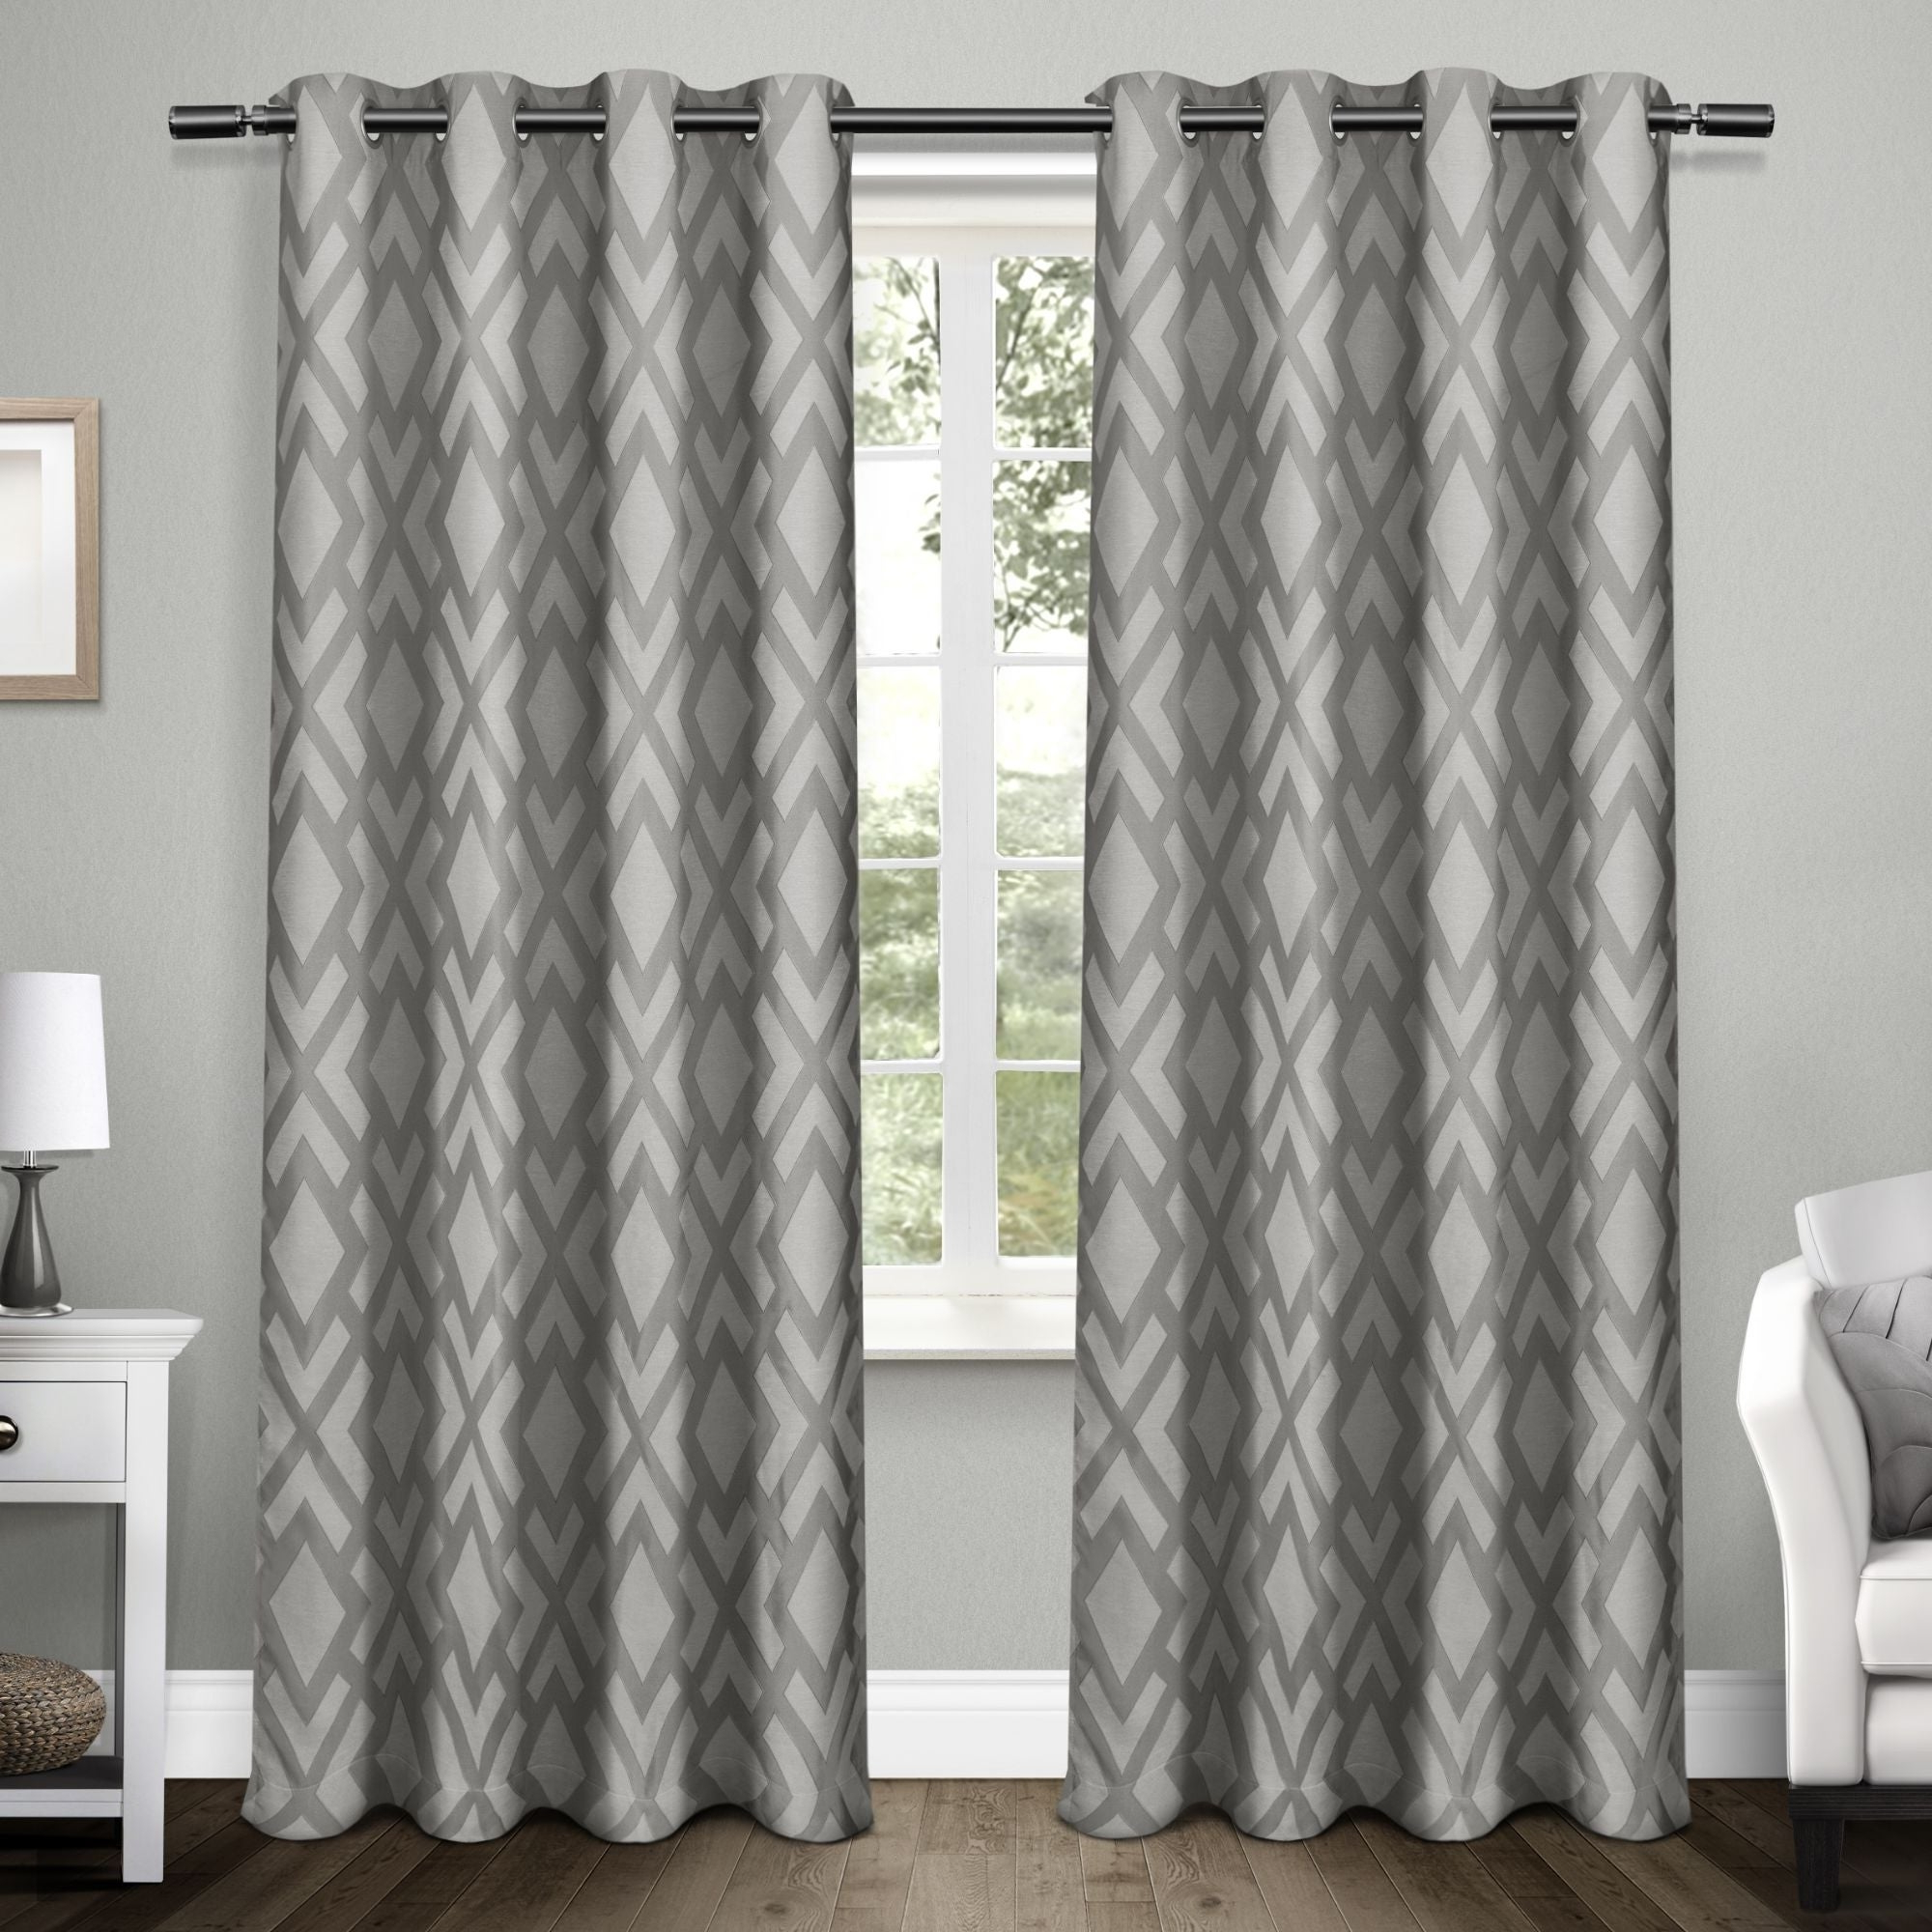 Well Liked Gracewood Hollow Tucakovic Energy Efficient Fabric Blackout Curtains With Regard To Ati Home Easton Thermal Woven Blackout Grommet Top Curtain Panel Pair (View 18 of 20)